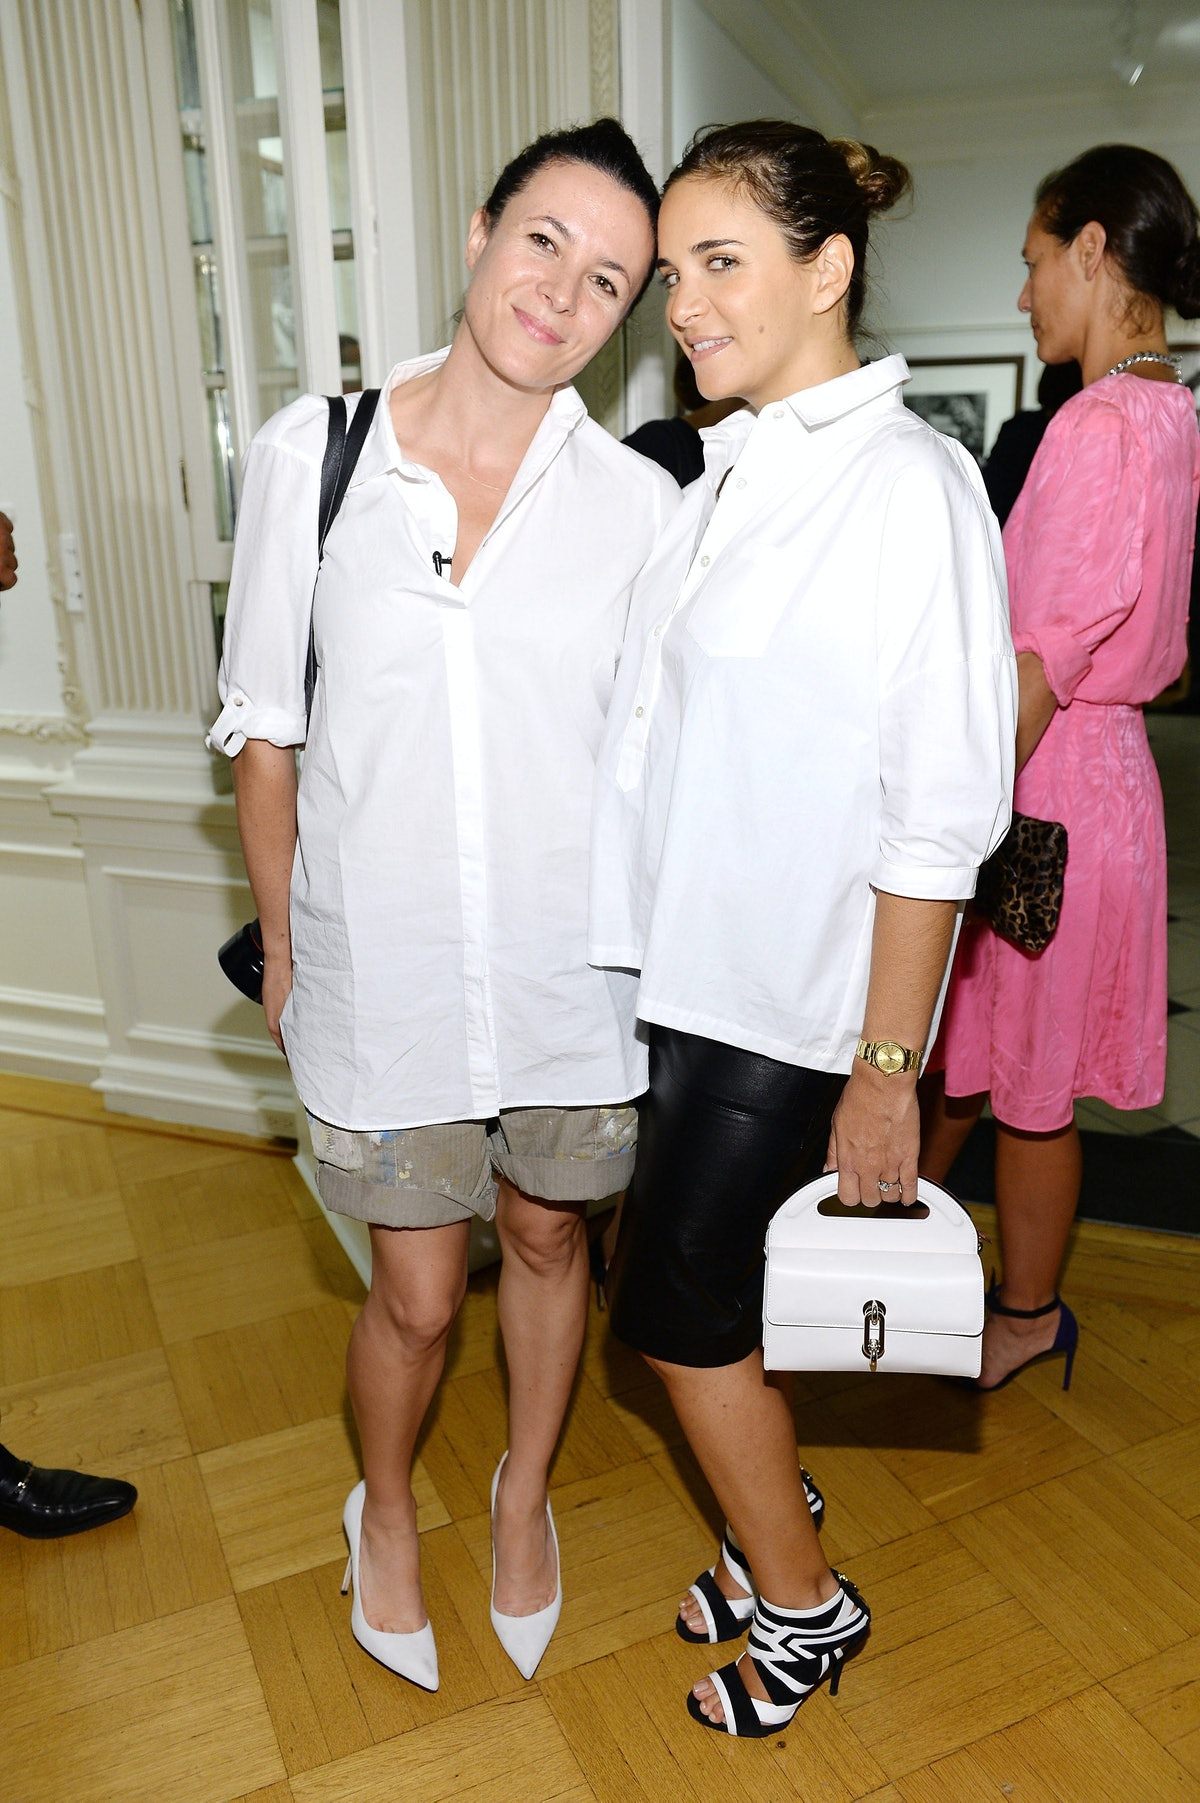 Garance Dore and Laure Heriard Dubreuil